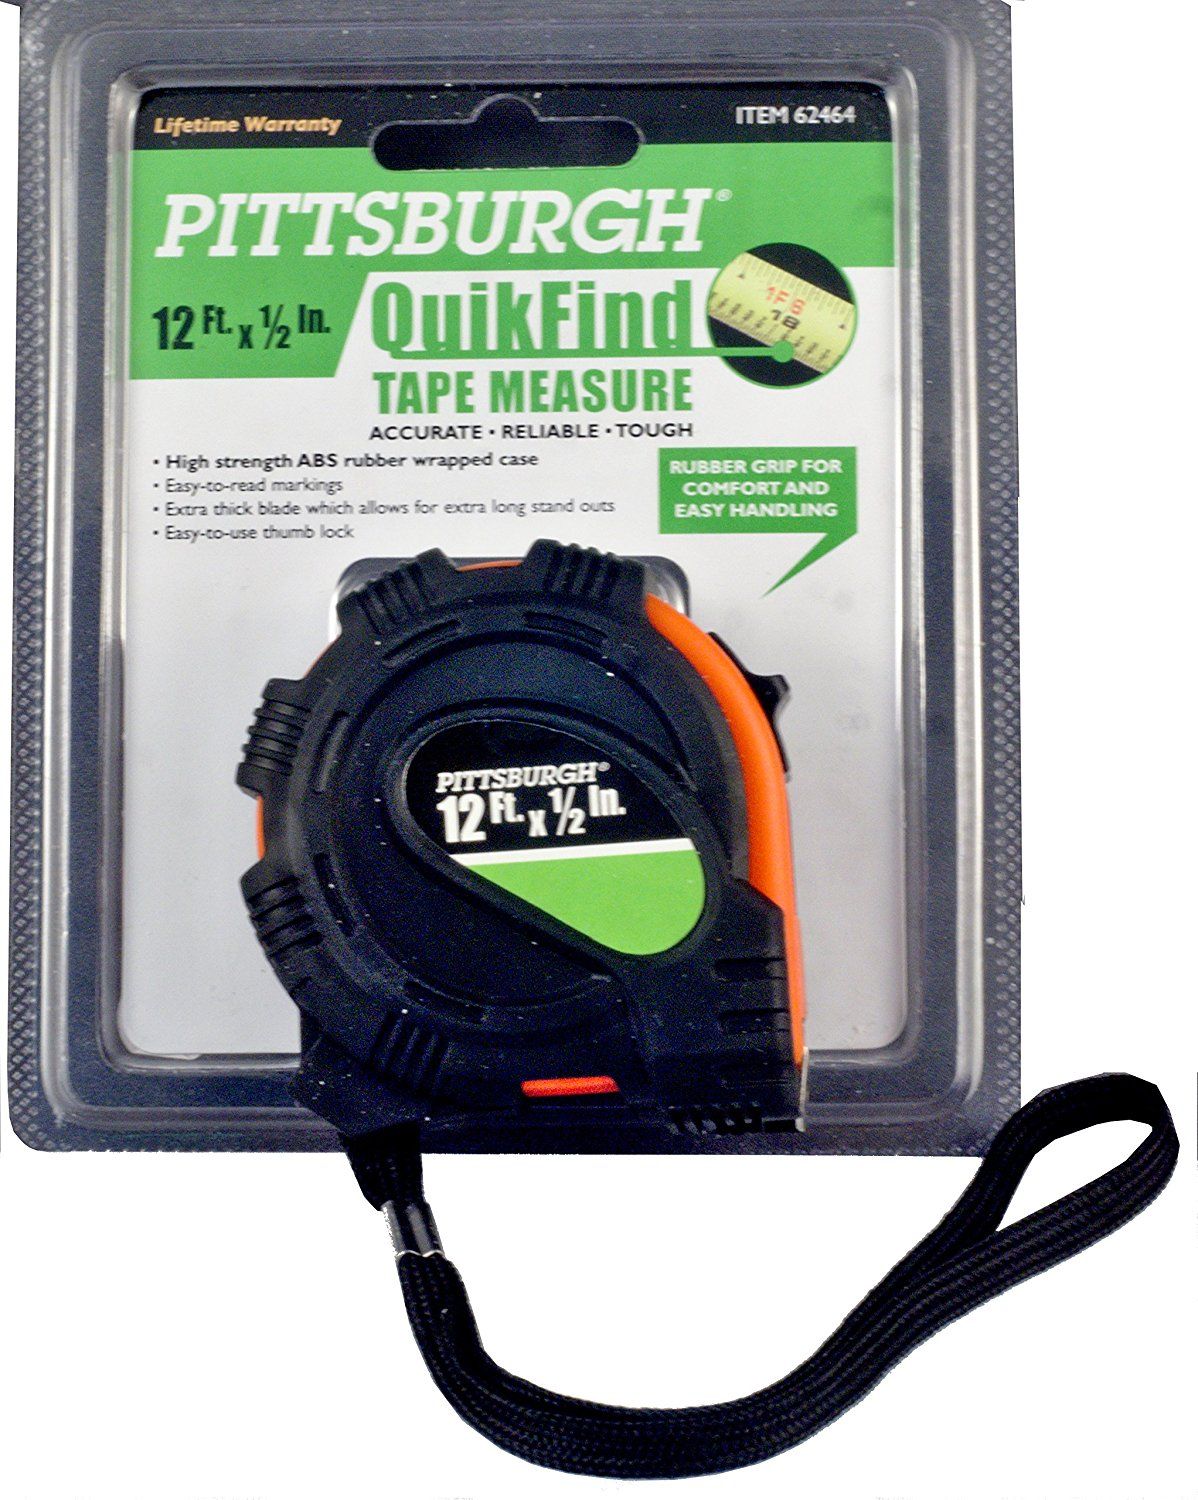 Pittsburgh QuikFind 12 Ft. x ½ In. Tape Measure